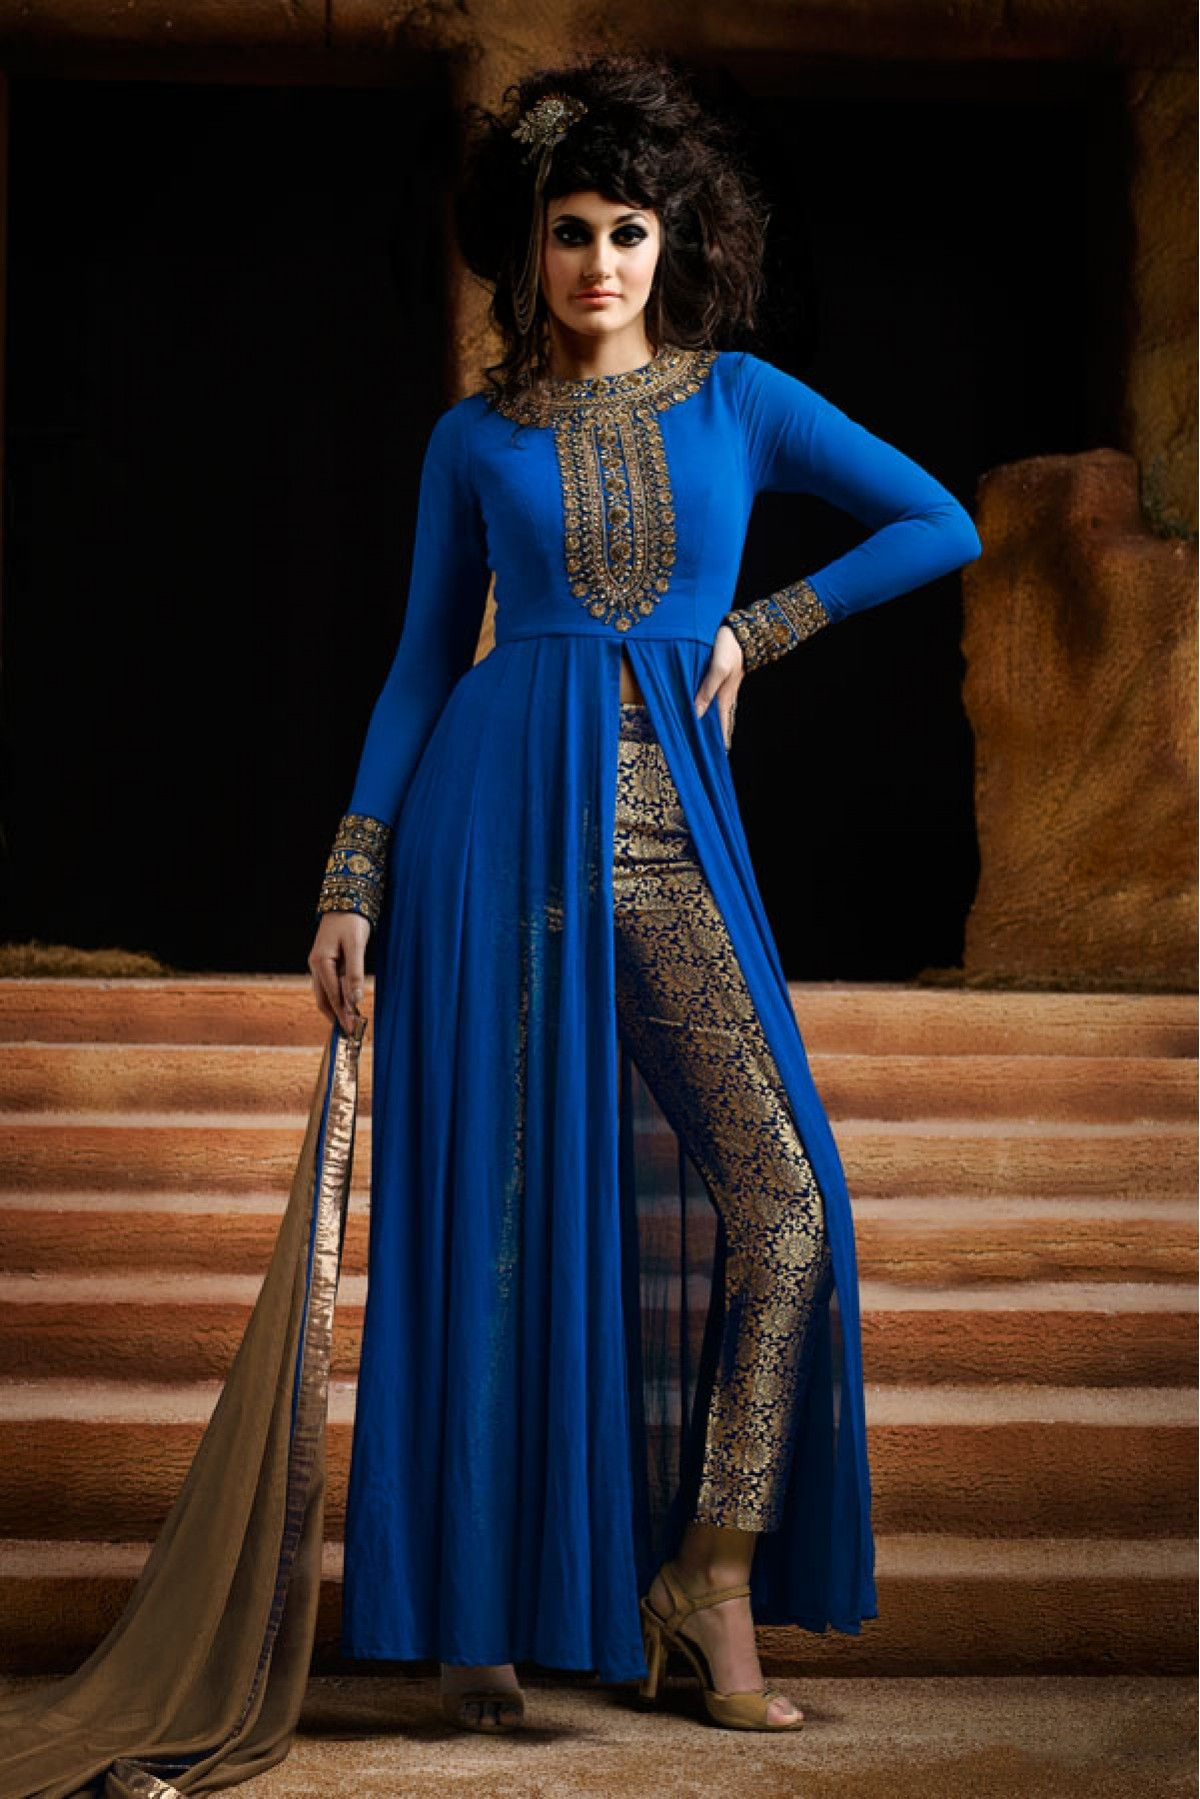 3c350ea039 Blue Colour Georgette Fabric Designer Semi Stitched Salwar Kameez Comes  With Matching Dupatta and Bottom Fabric. This Suit Is Crafted With  Embroidery.